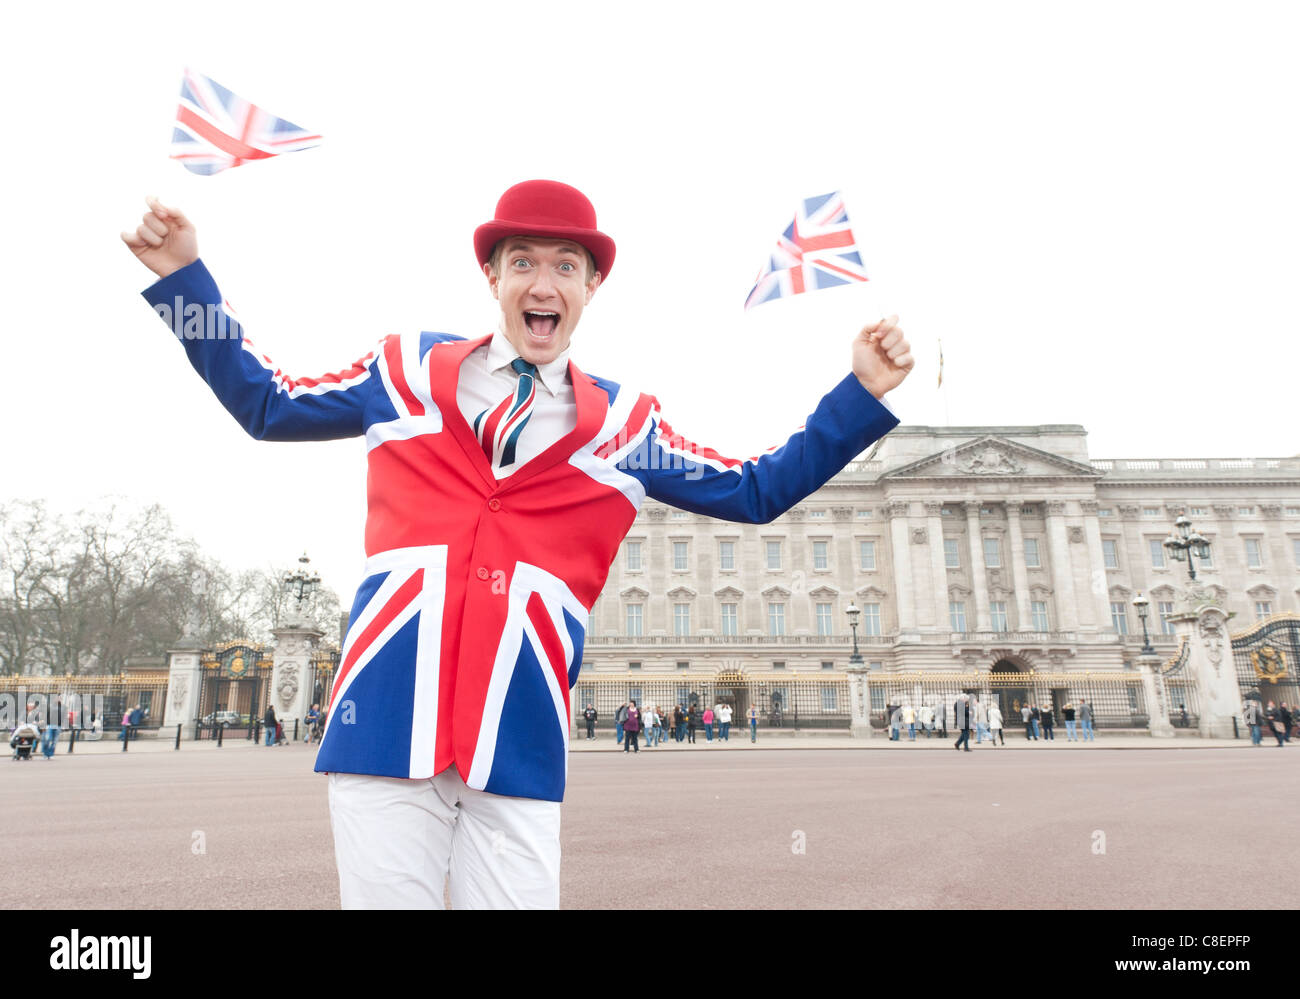 Patriotic man wearing Union Jack outfit waving  Union Flags at Buckingham Palace, London. Brexiteer, Brexit. - Stock Image